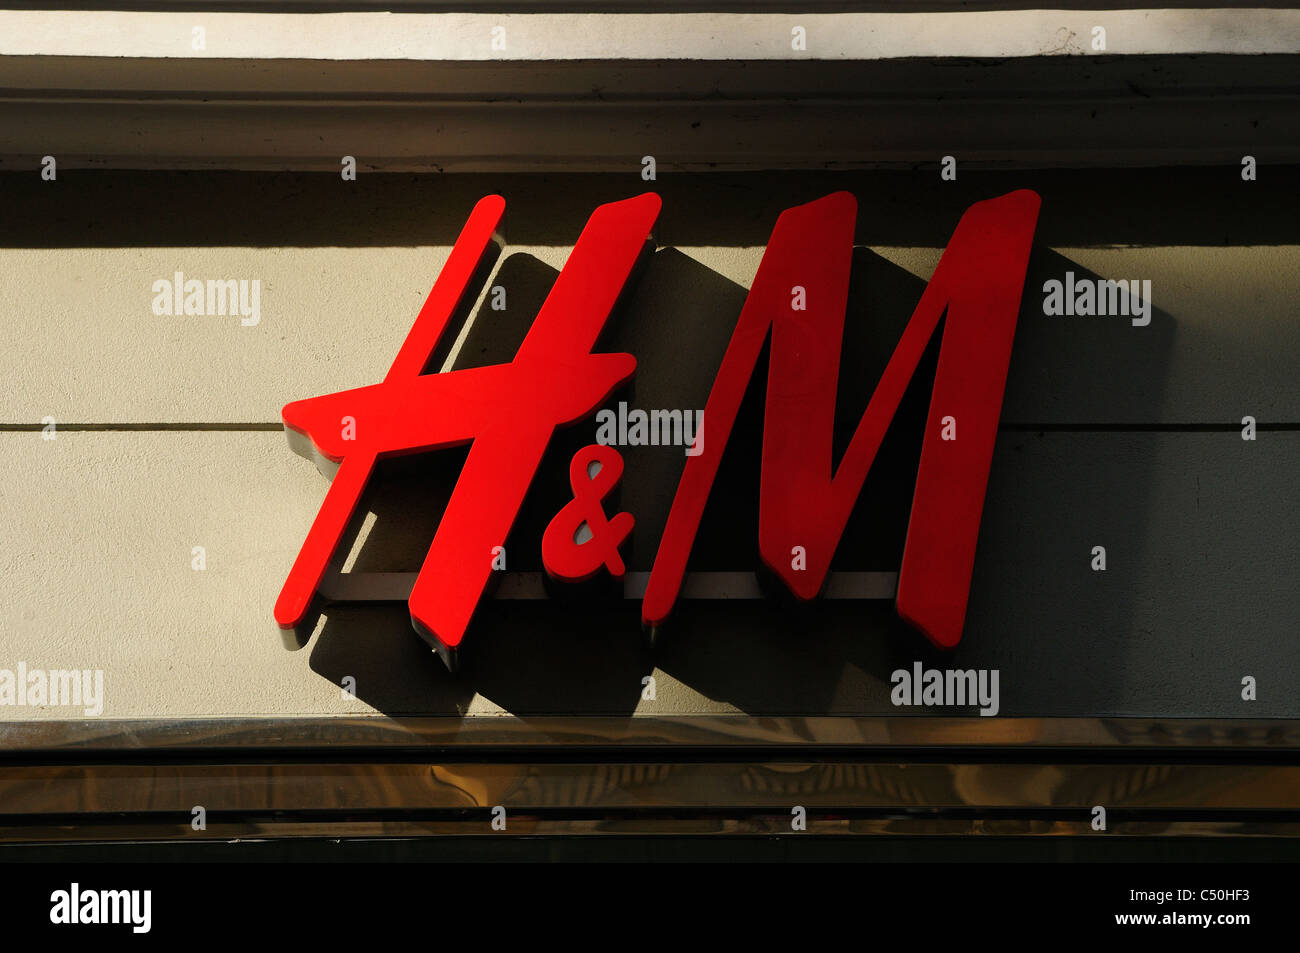 H&M is a popular high-street fashion outlet. - Stock Image